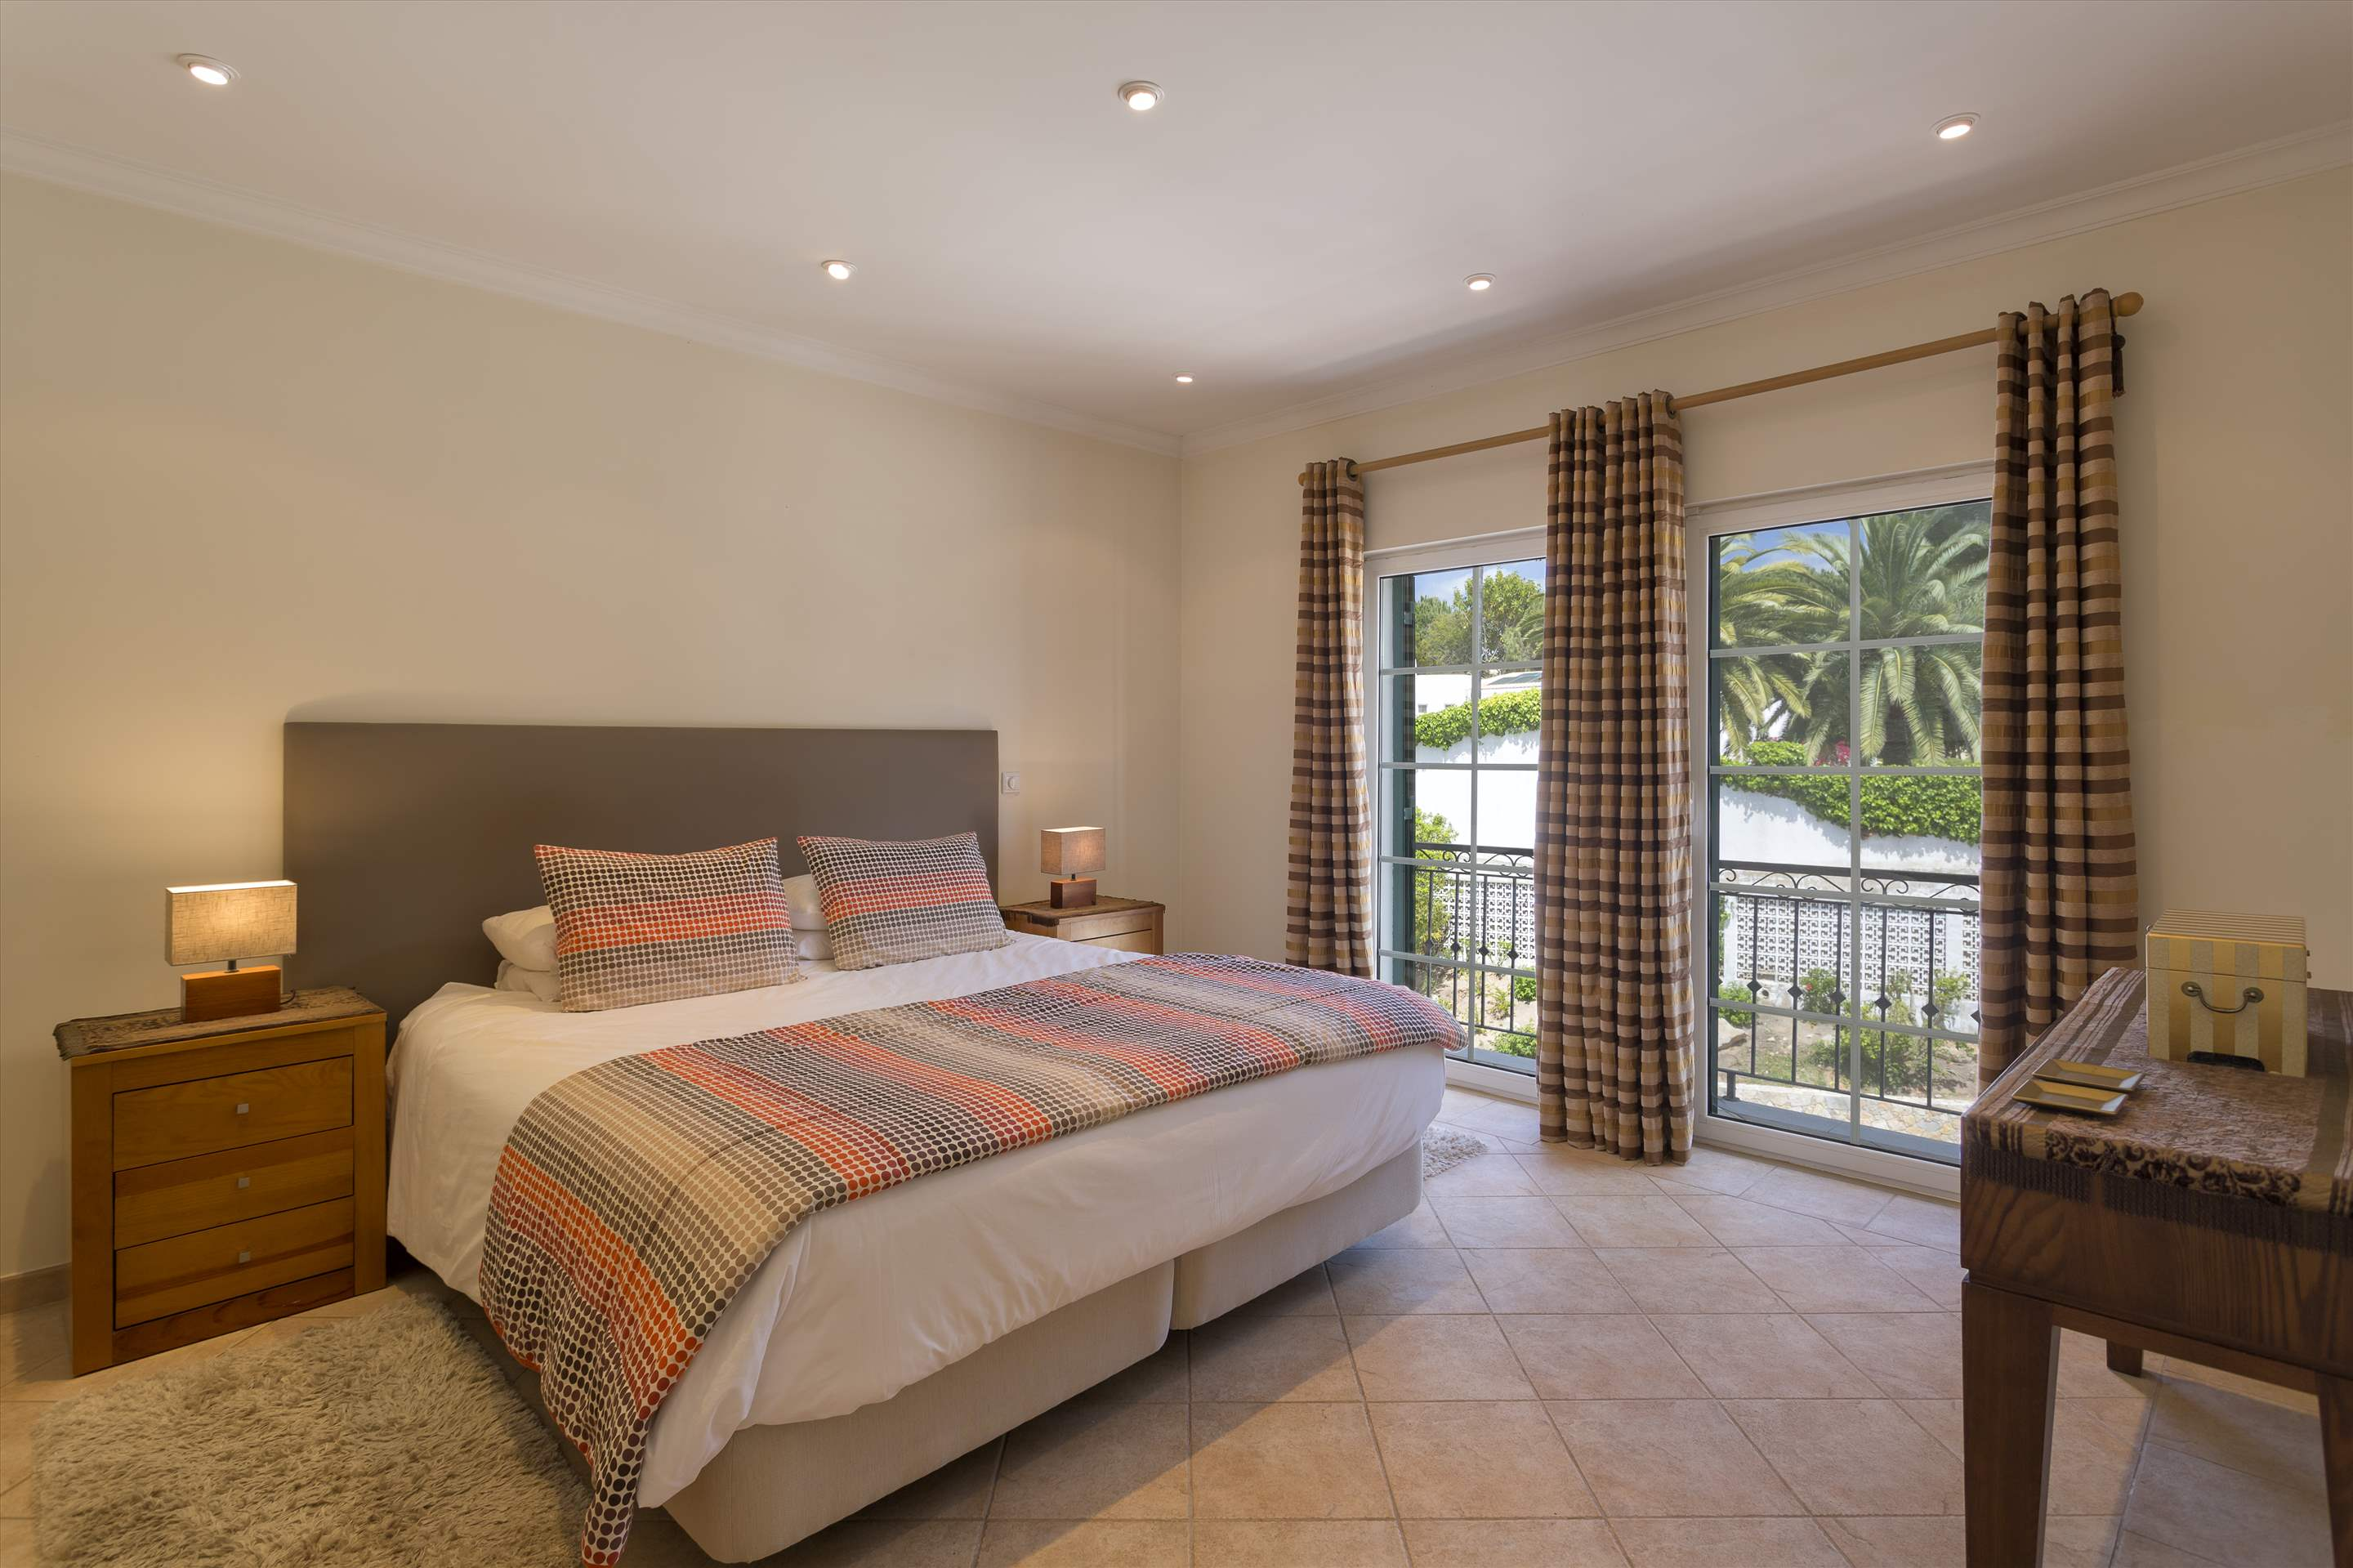 Apartment Jacinda, 2 bedroom apartment in Vale do Lobo, Algarve Photo #12